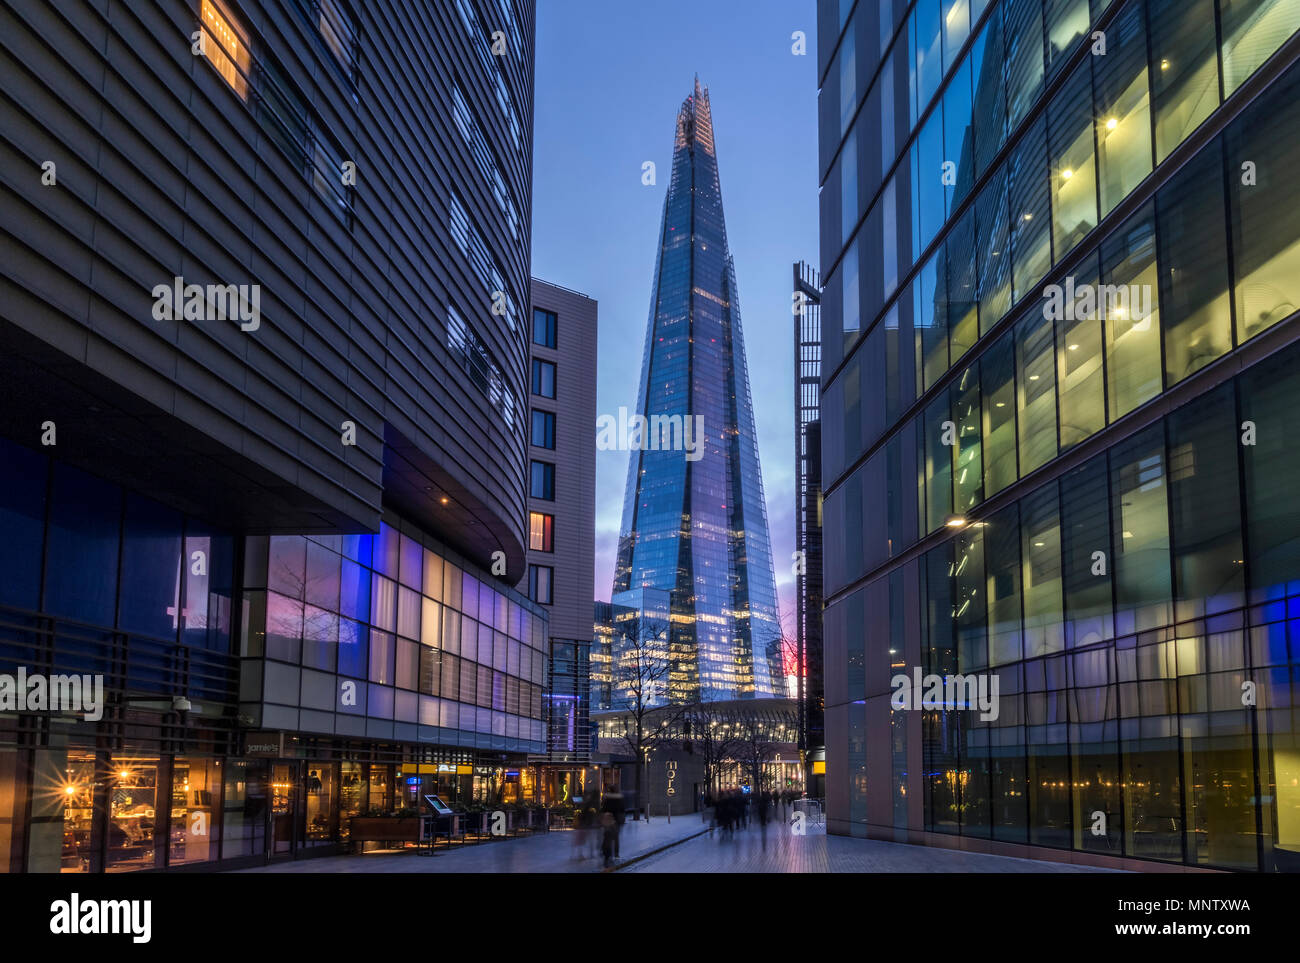 The Shard skyscraper and Modern Office Blocks, Southwark, London, England, UK - Stock Image